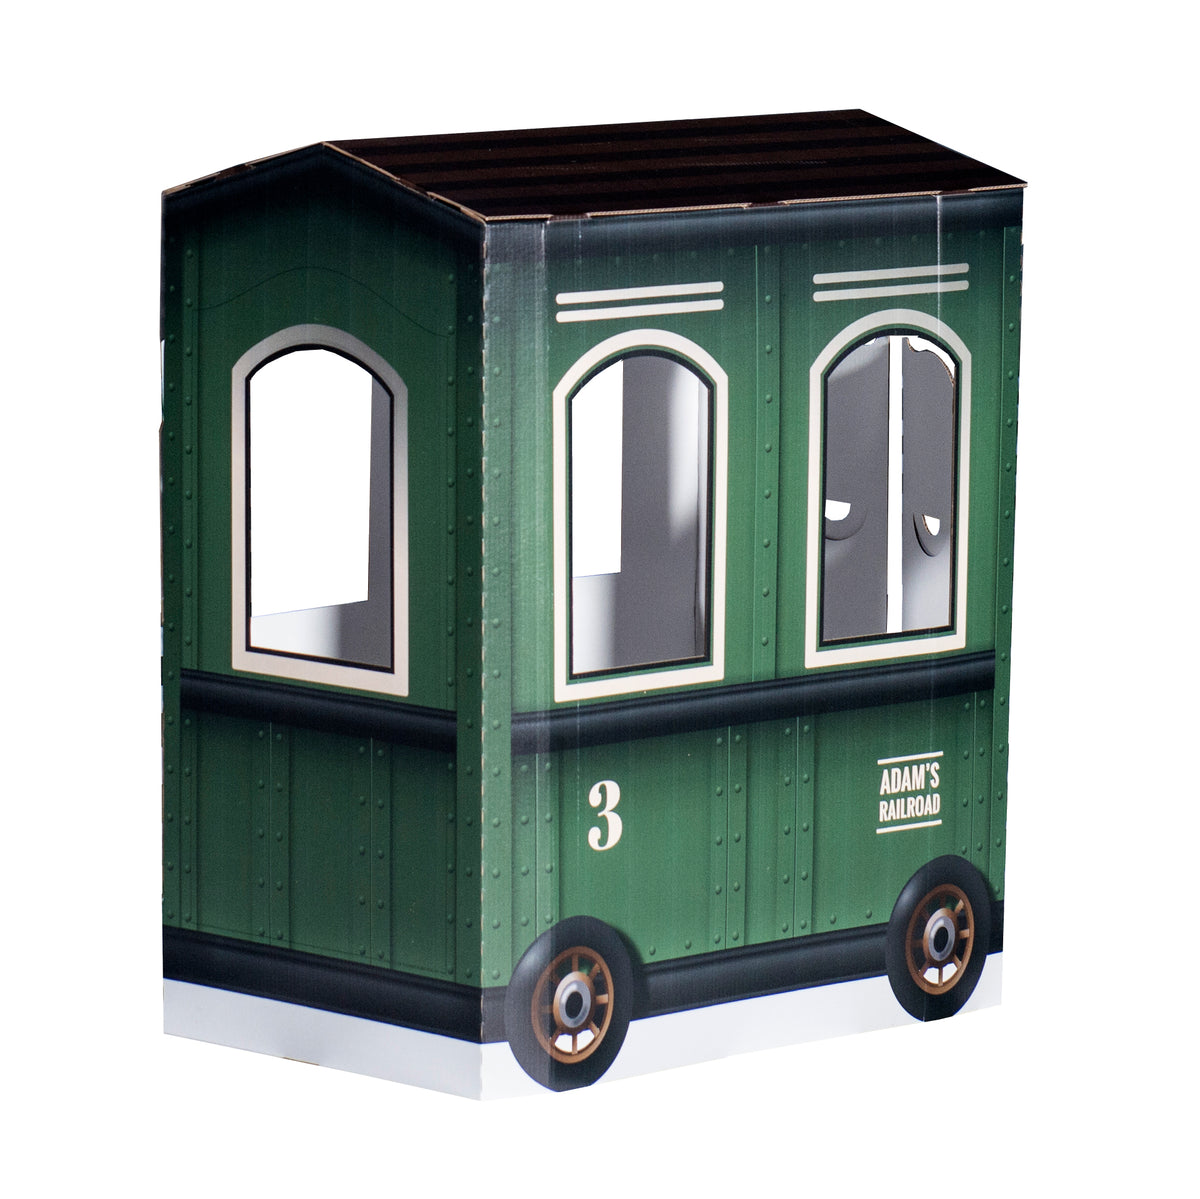 3 ft. 5 in. 3D Personalized Railroad Car Prop